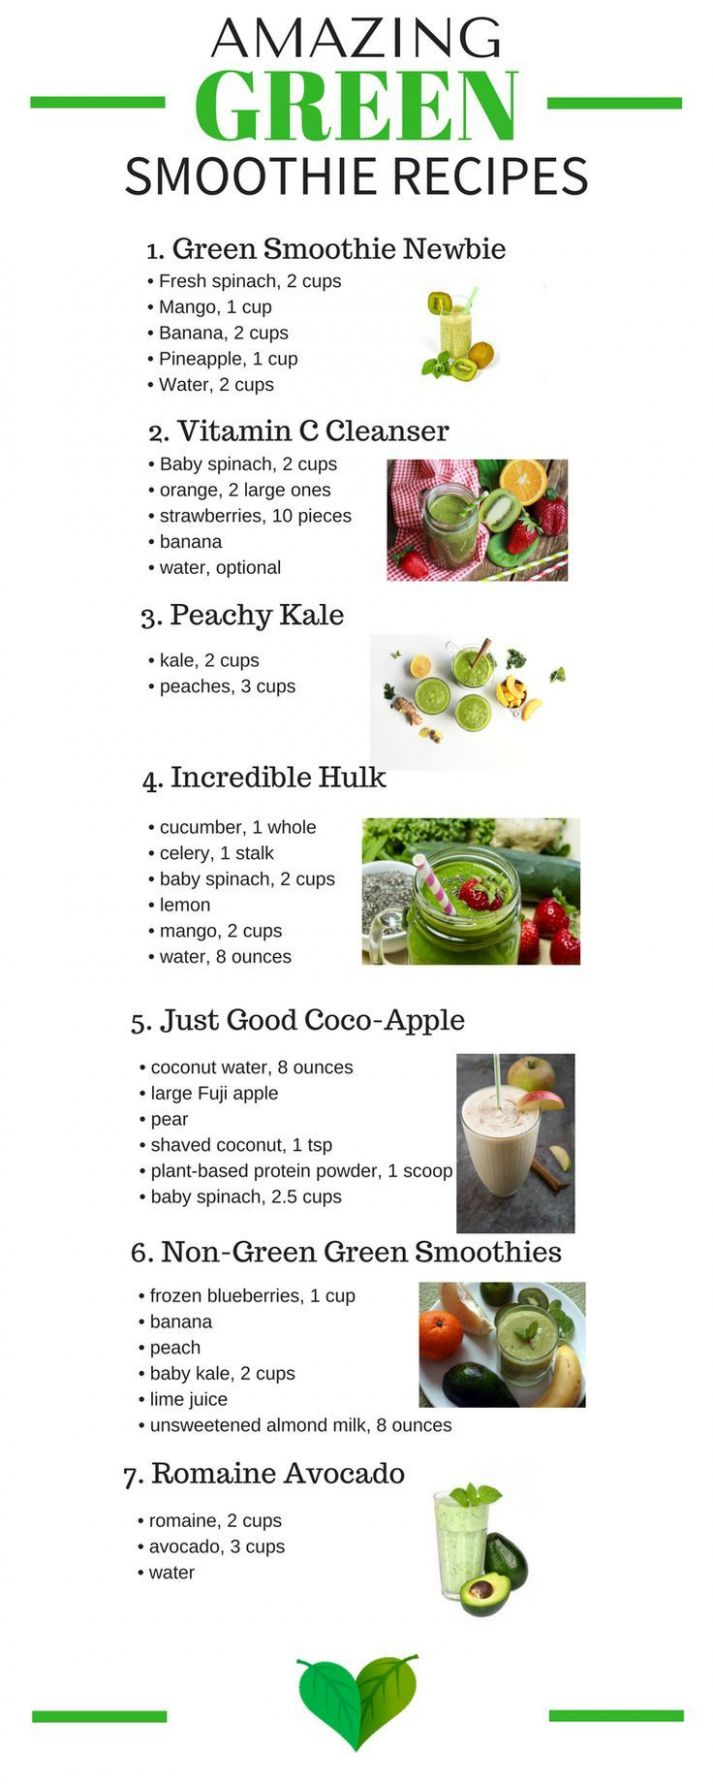 9 Green Smoothies That Taste Like Heaven - Every Home Remedy ..